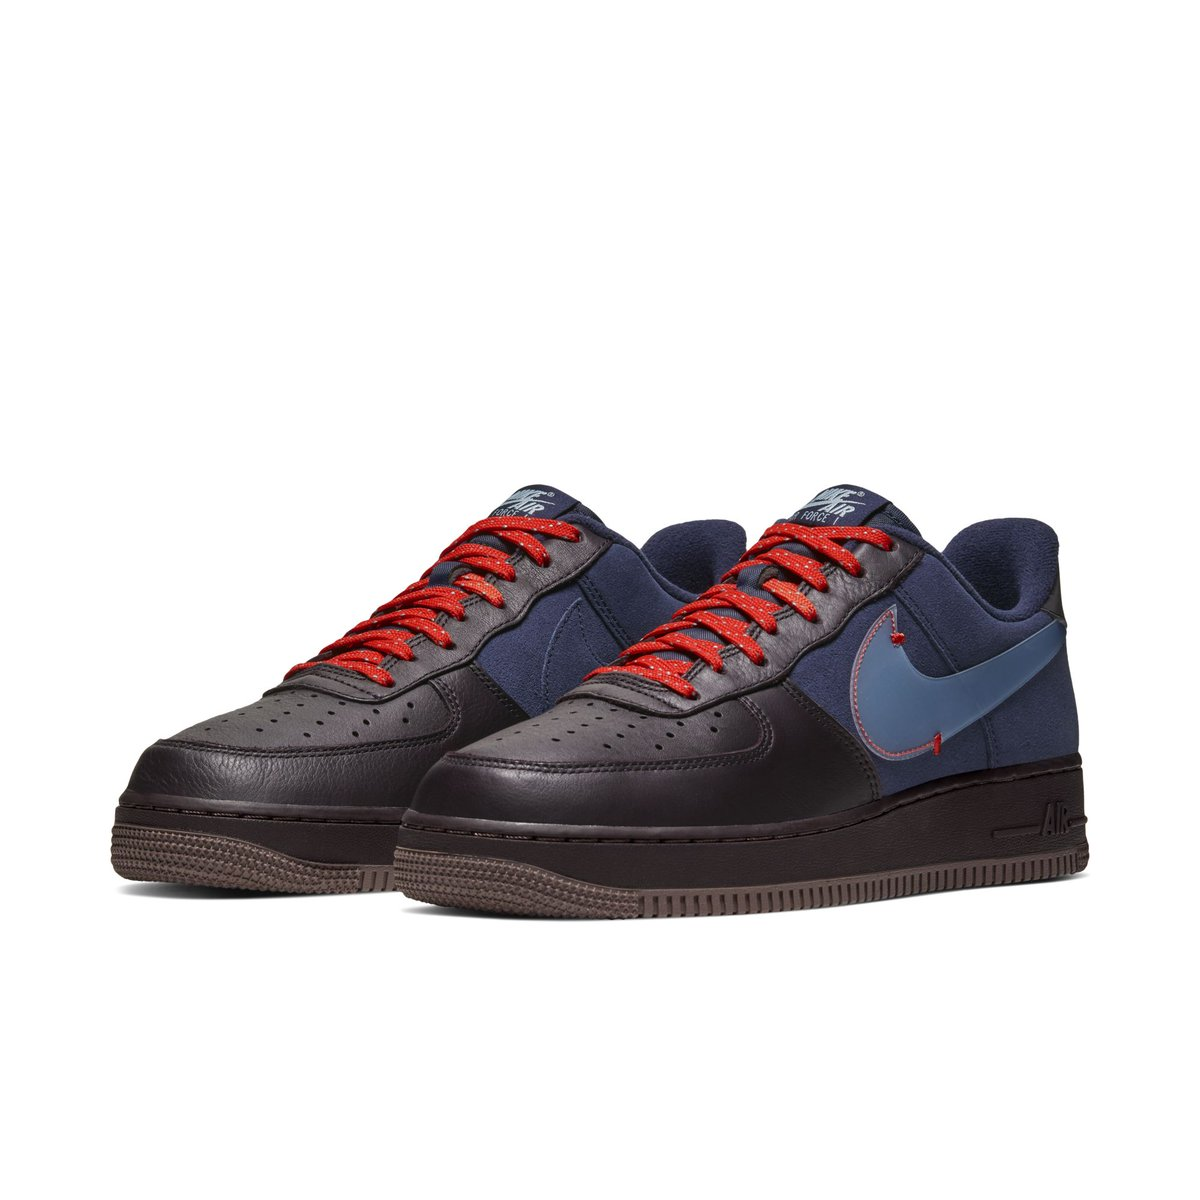 全新 Nike Air Force 1 PRM 即将发售